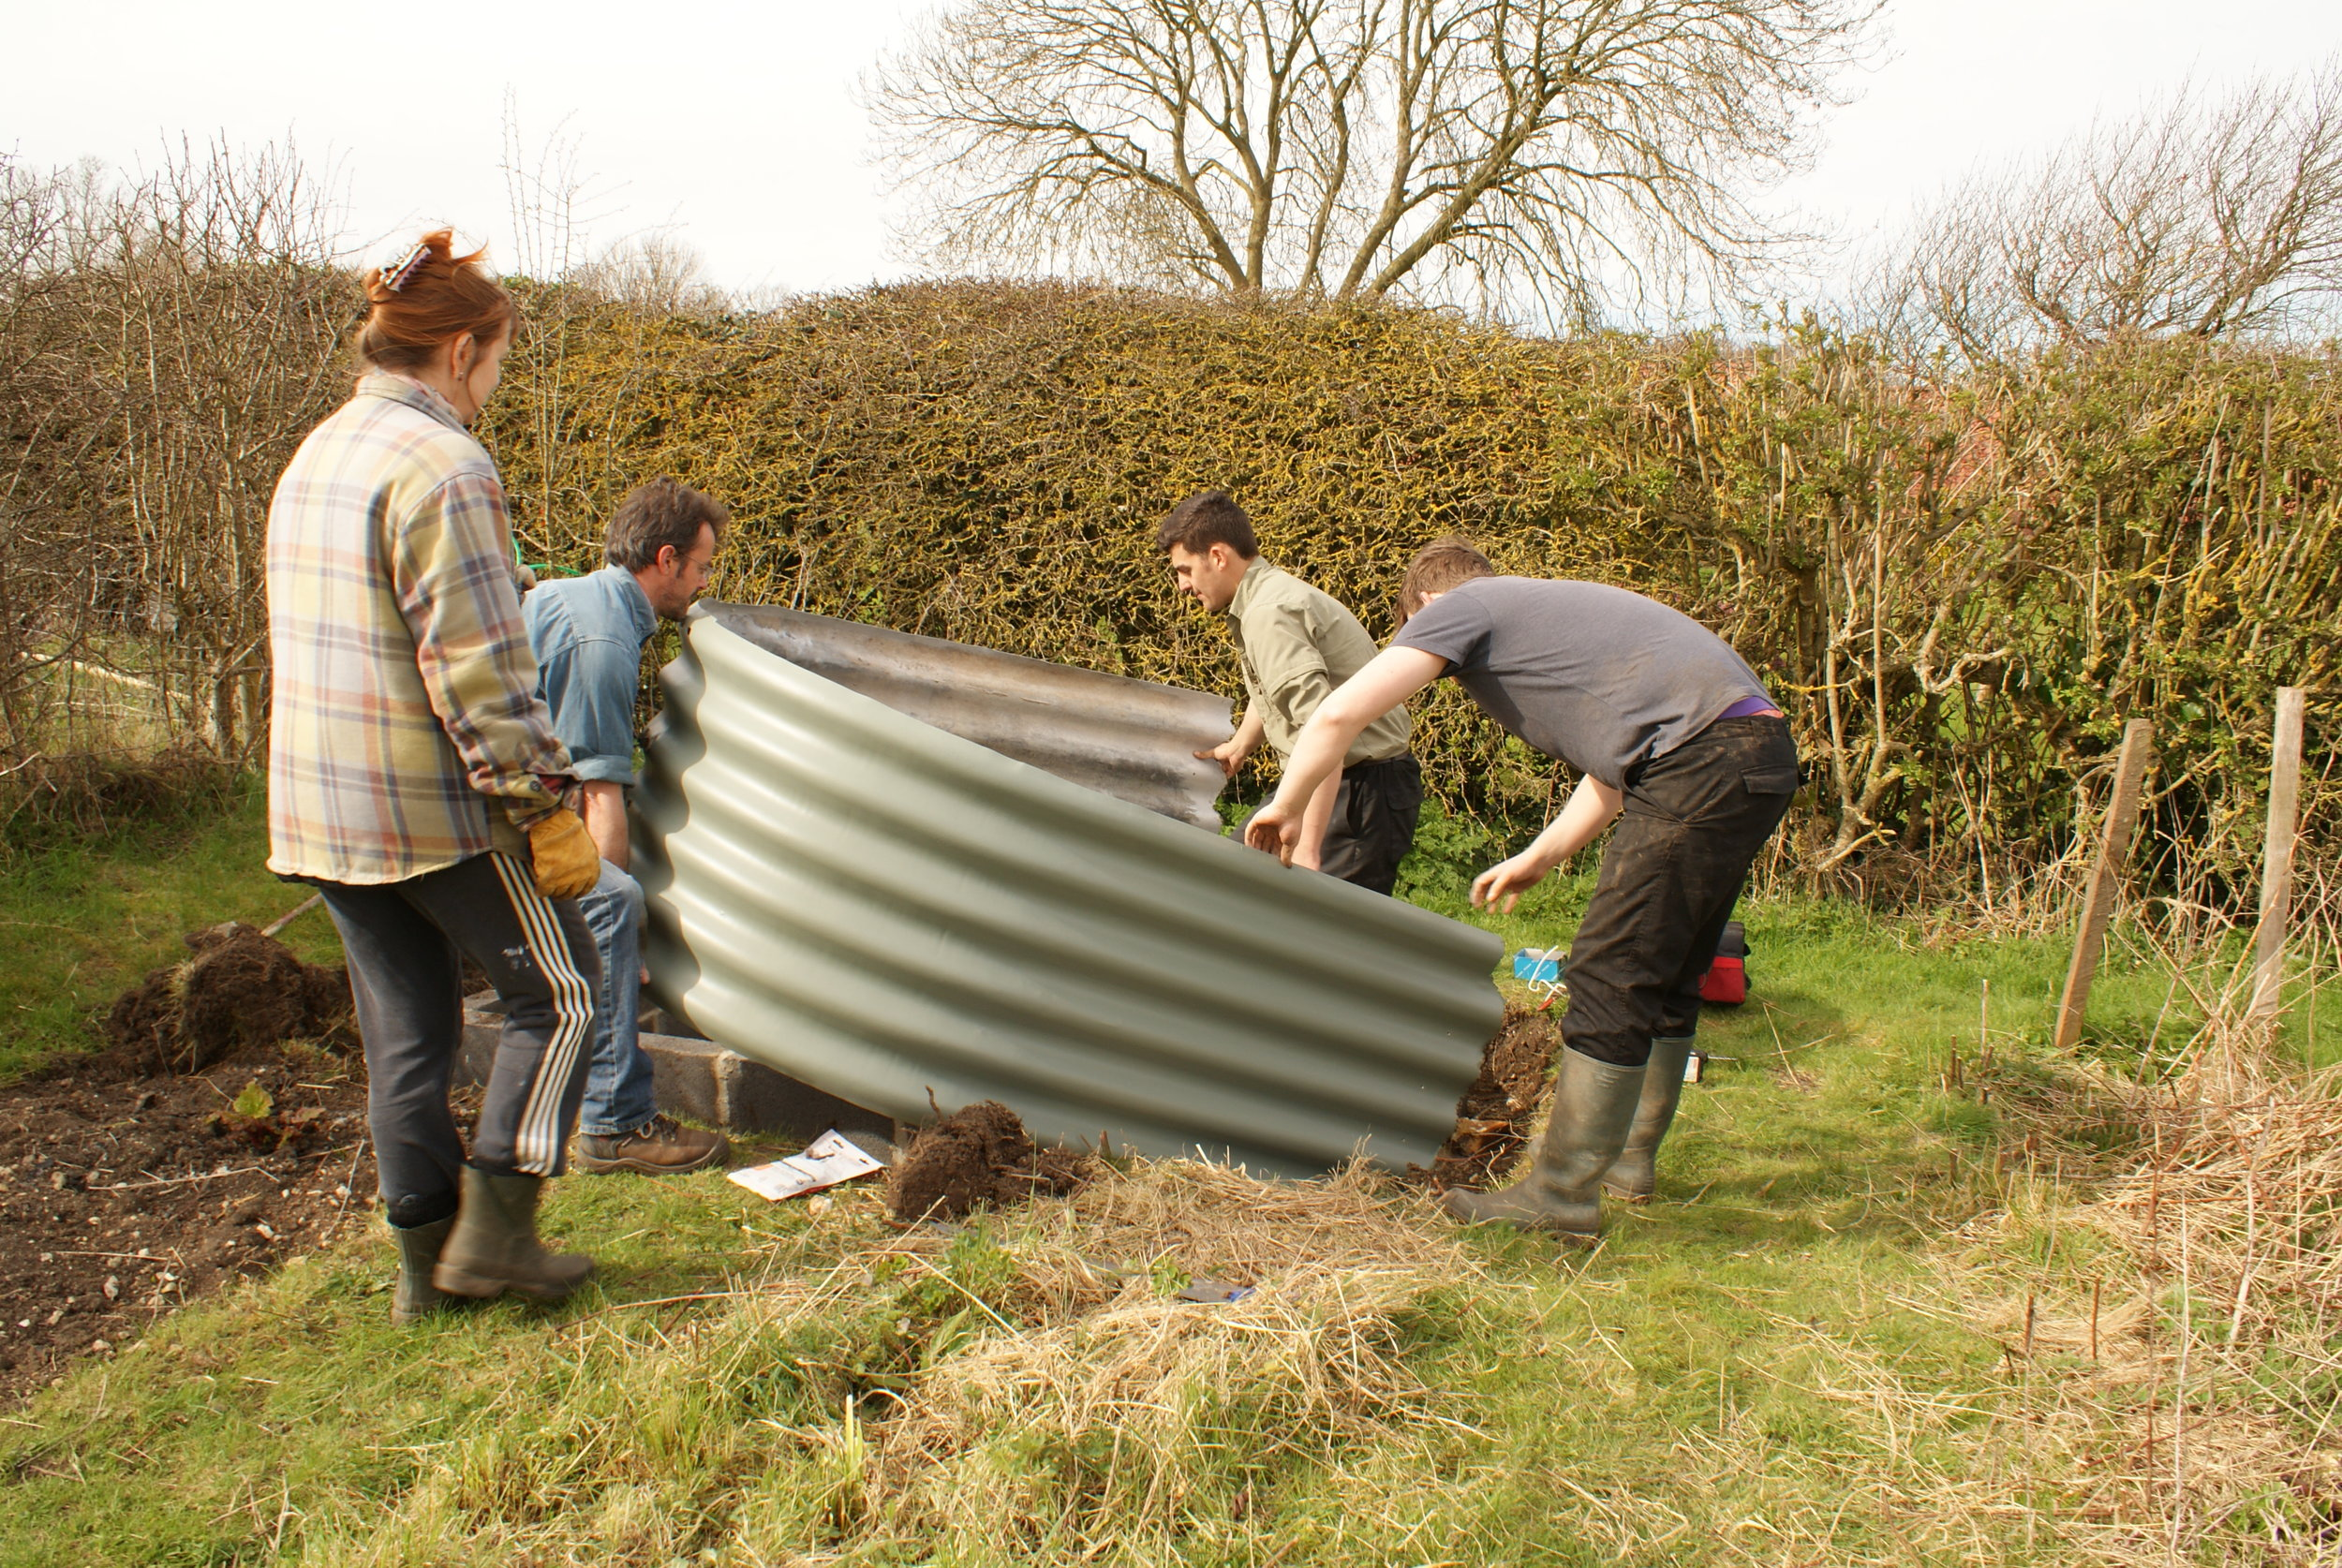 A recent construction project: a shed made from an old Anderson Shelter.